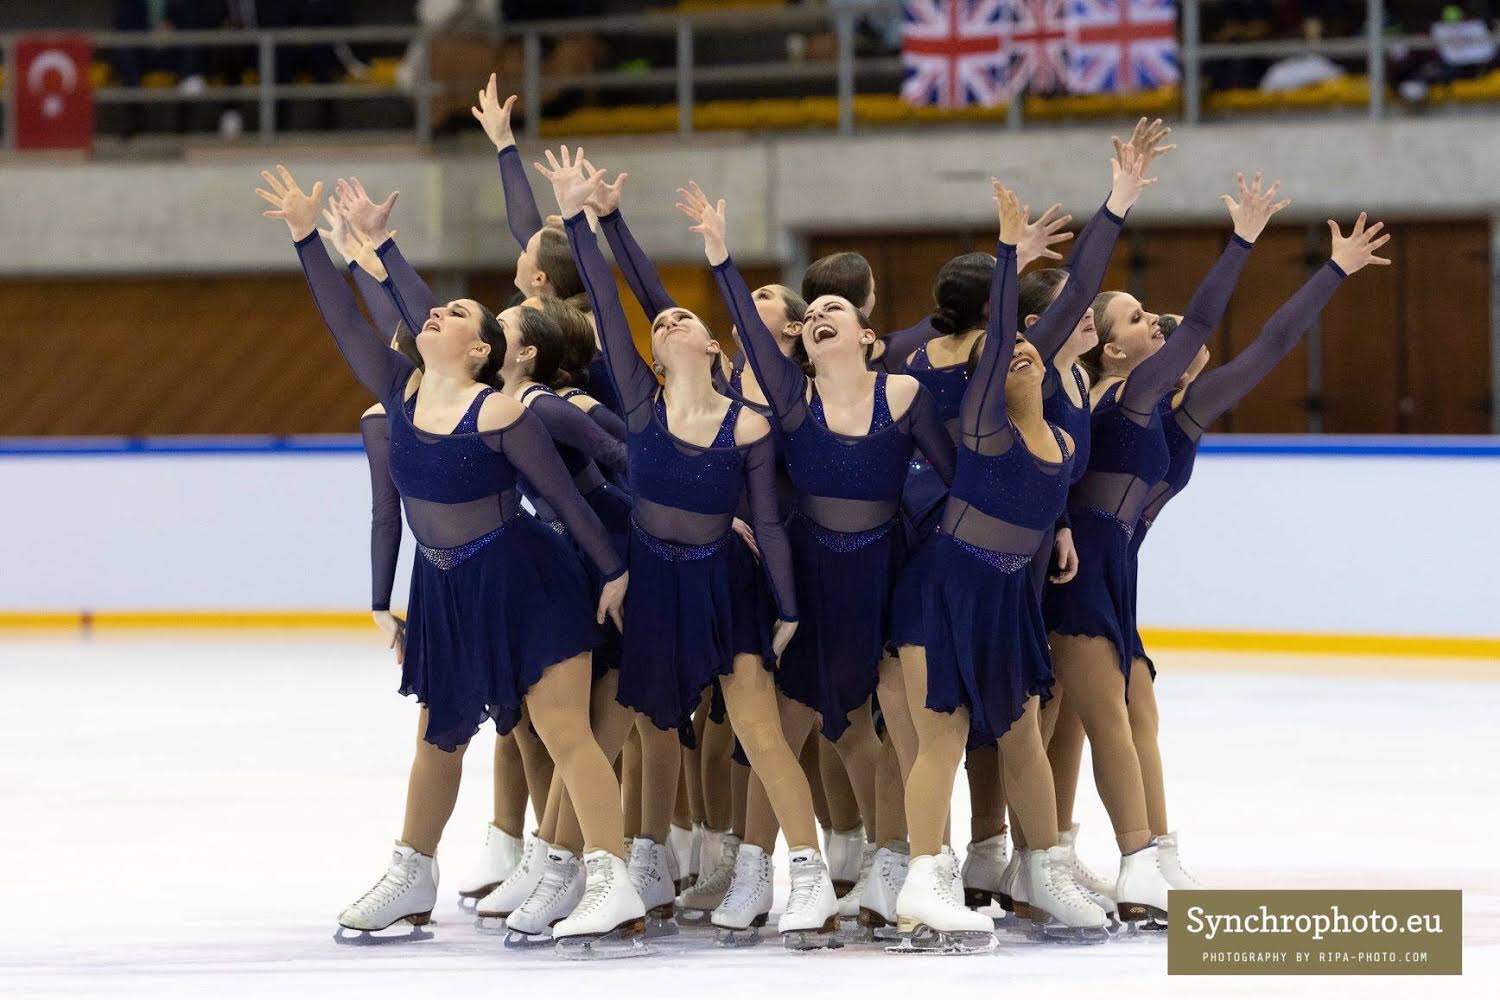 West Sophomore and Her Synchronized Skating Team's